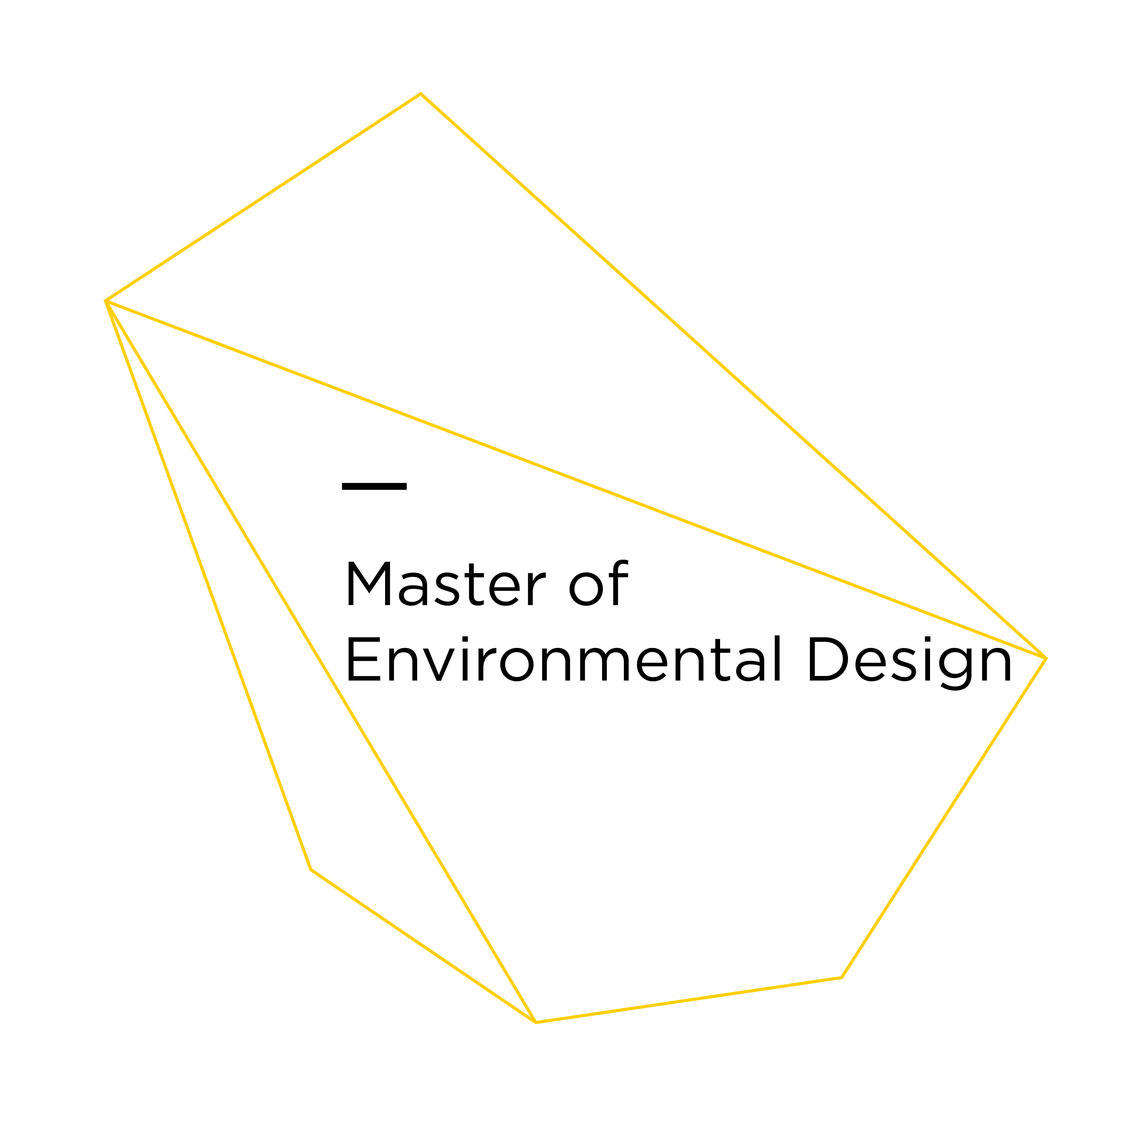 Master of Environmental Design (MEDes)